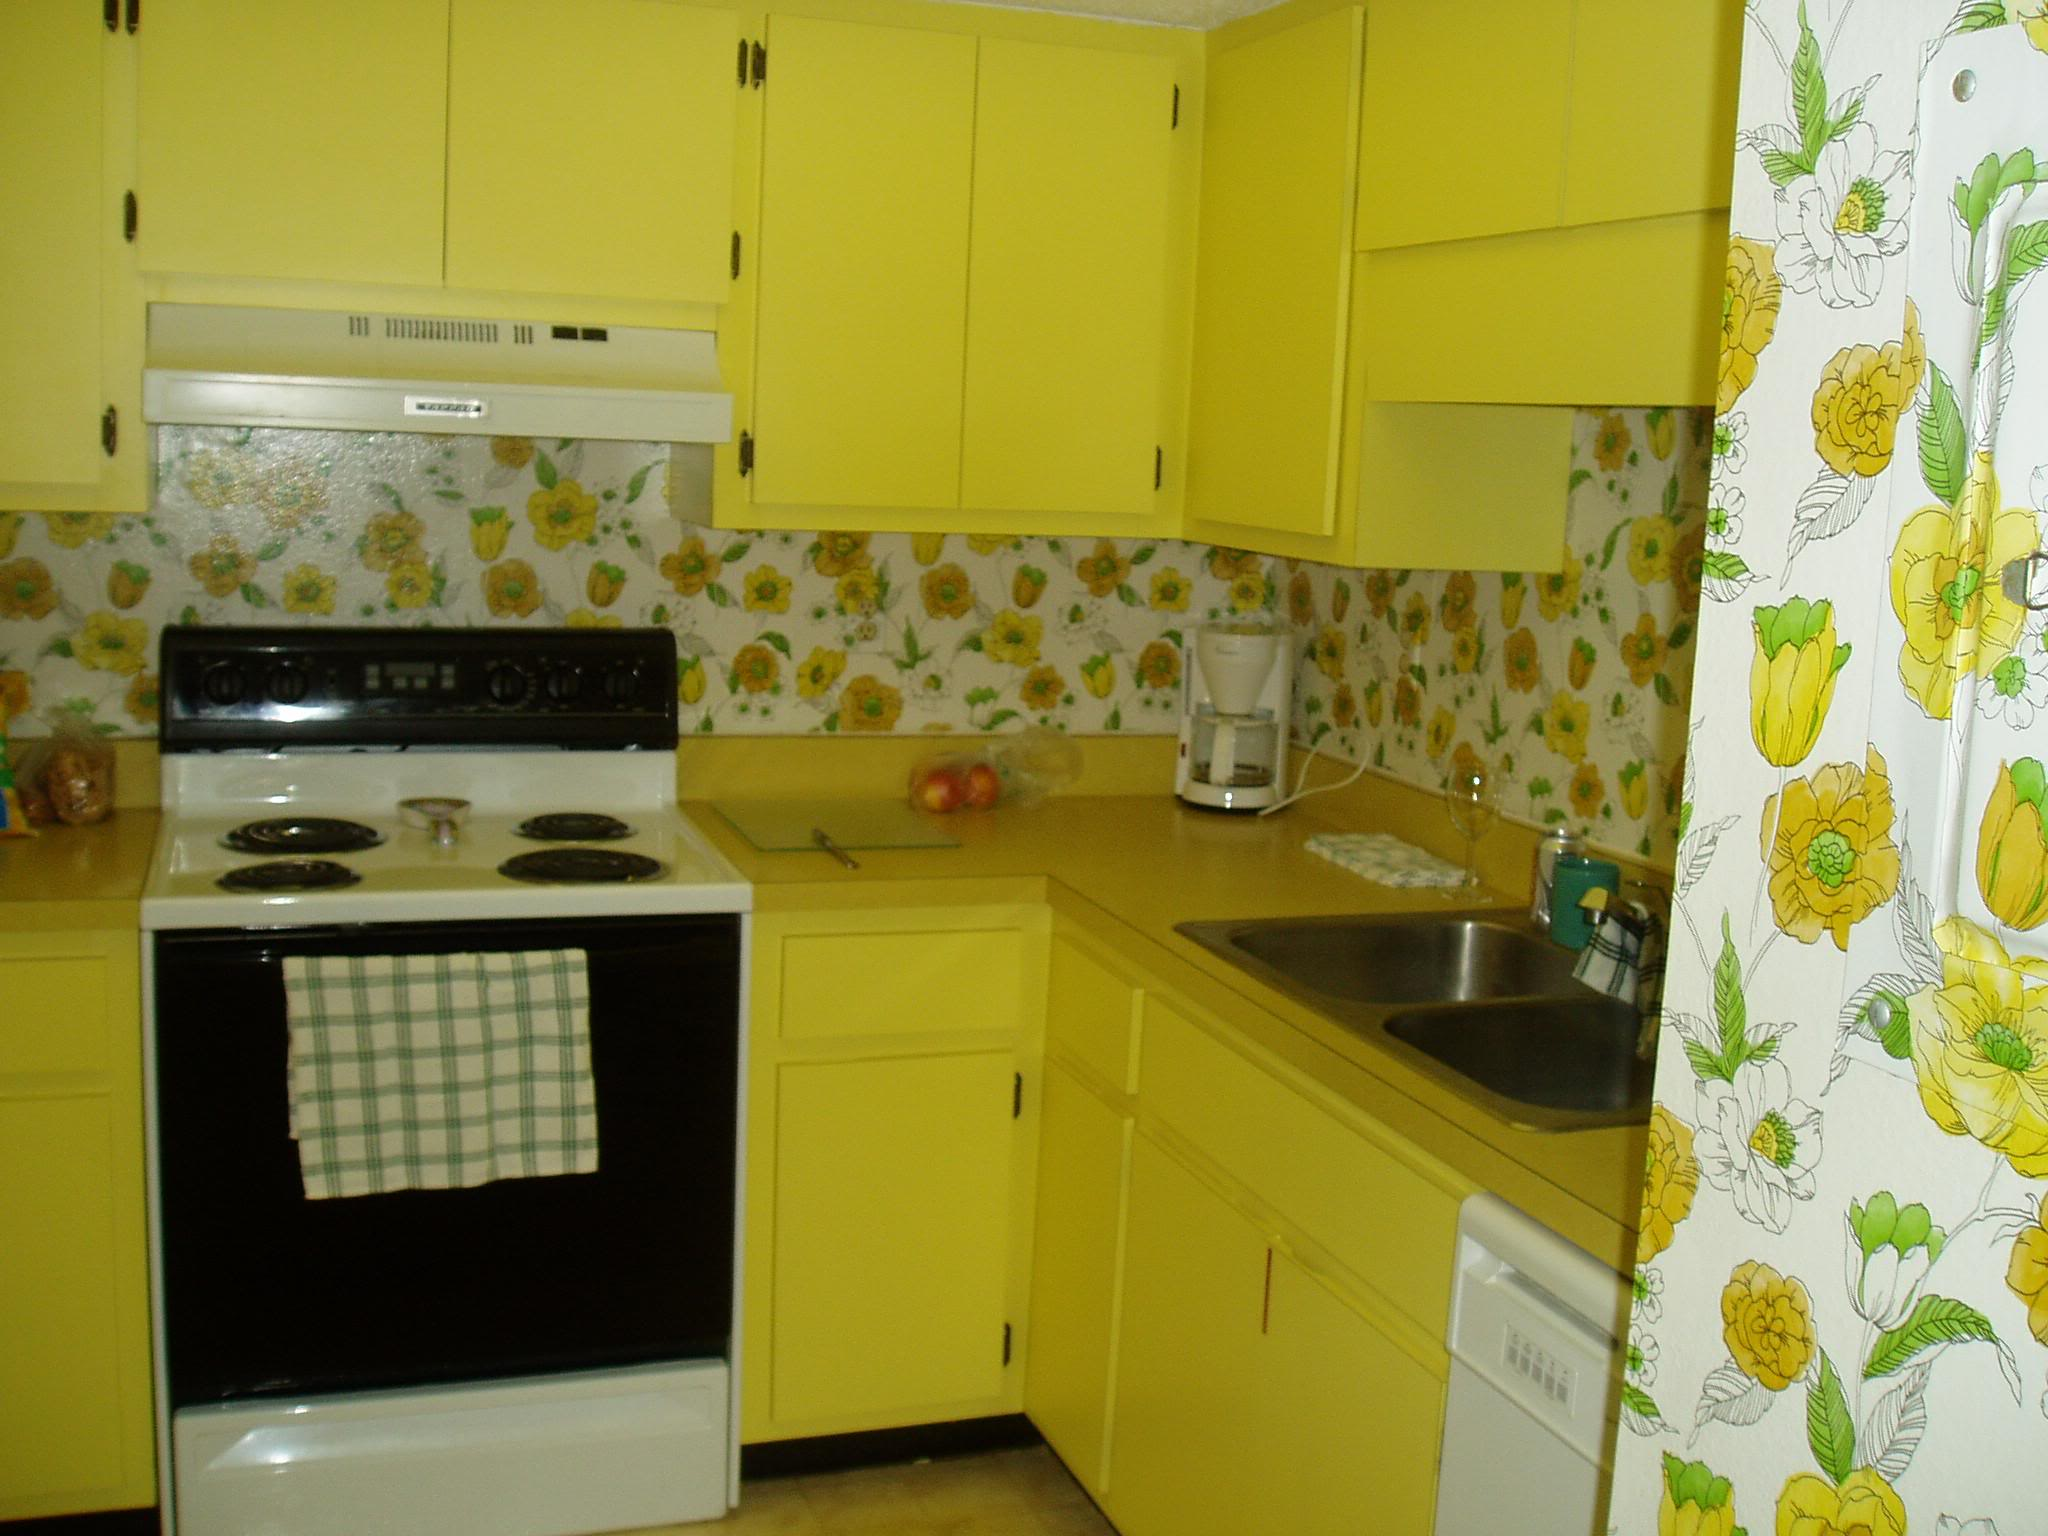 Things I hate about my kitchen: Quick fix or reason to move? | Homes ...